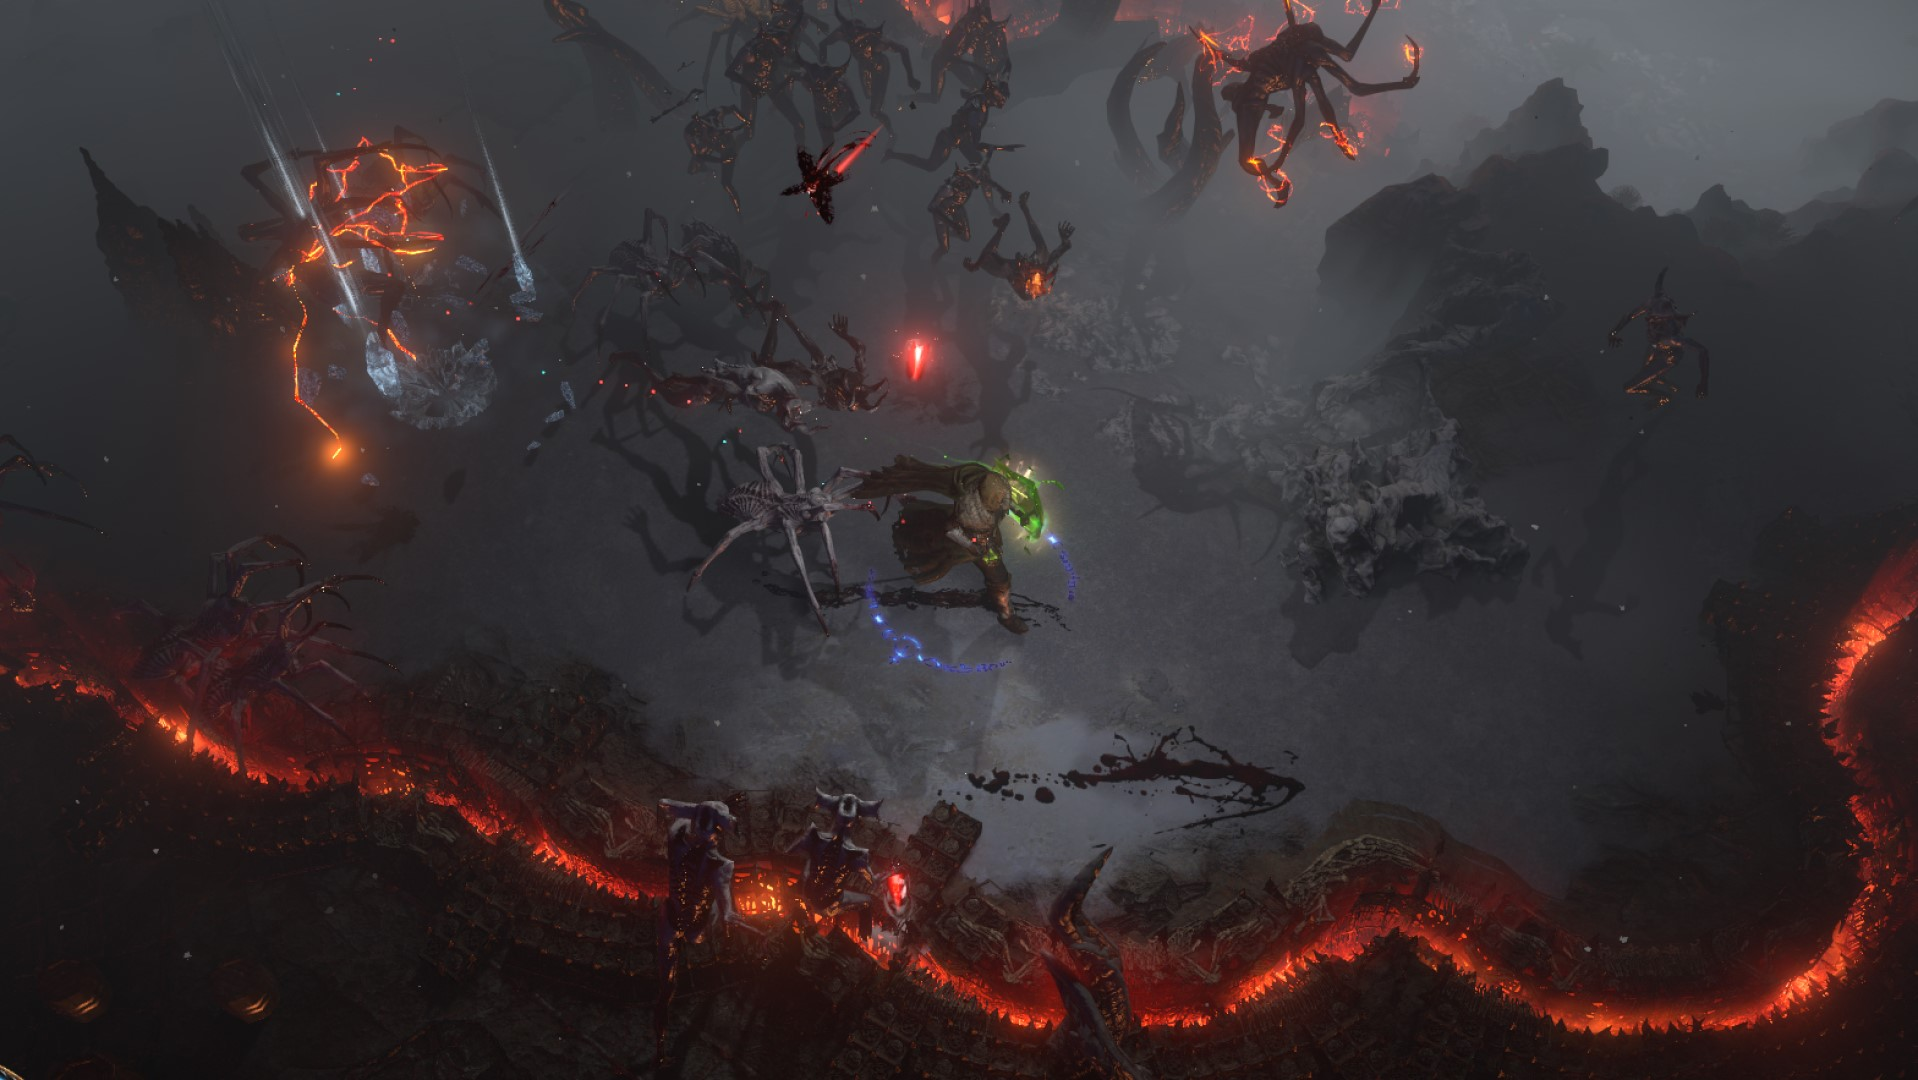 Path of Exile's Scourge expansion sends you to a demonic, alternate Wraeclast